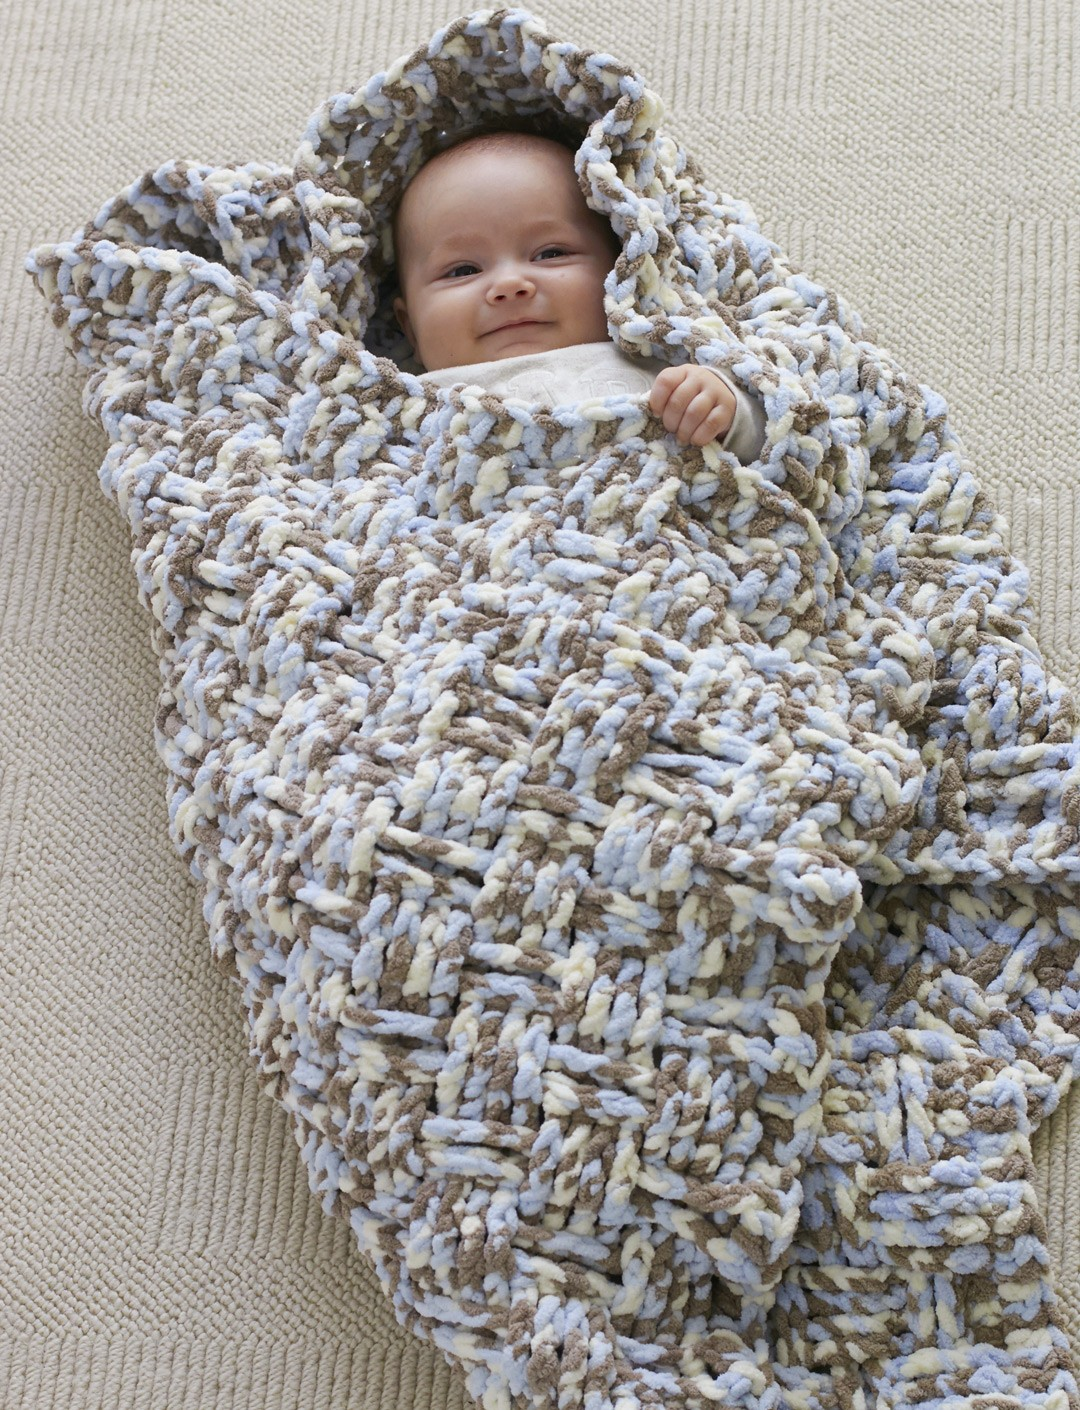 Easy Crochet Baby Blanket Patterns For Beginners : Bernat Dream Weaver Blanket, Crochet Pattern Yarnspirations